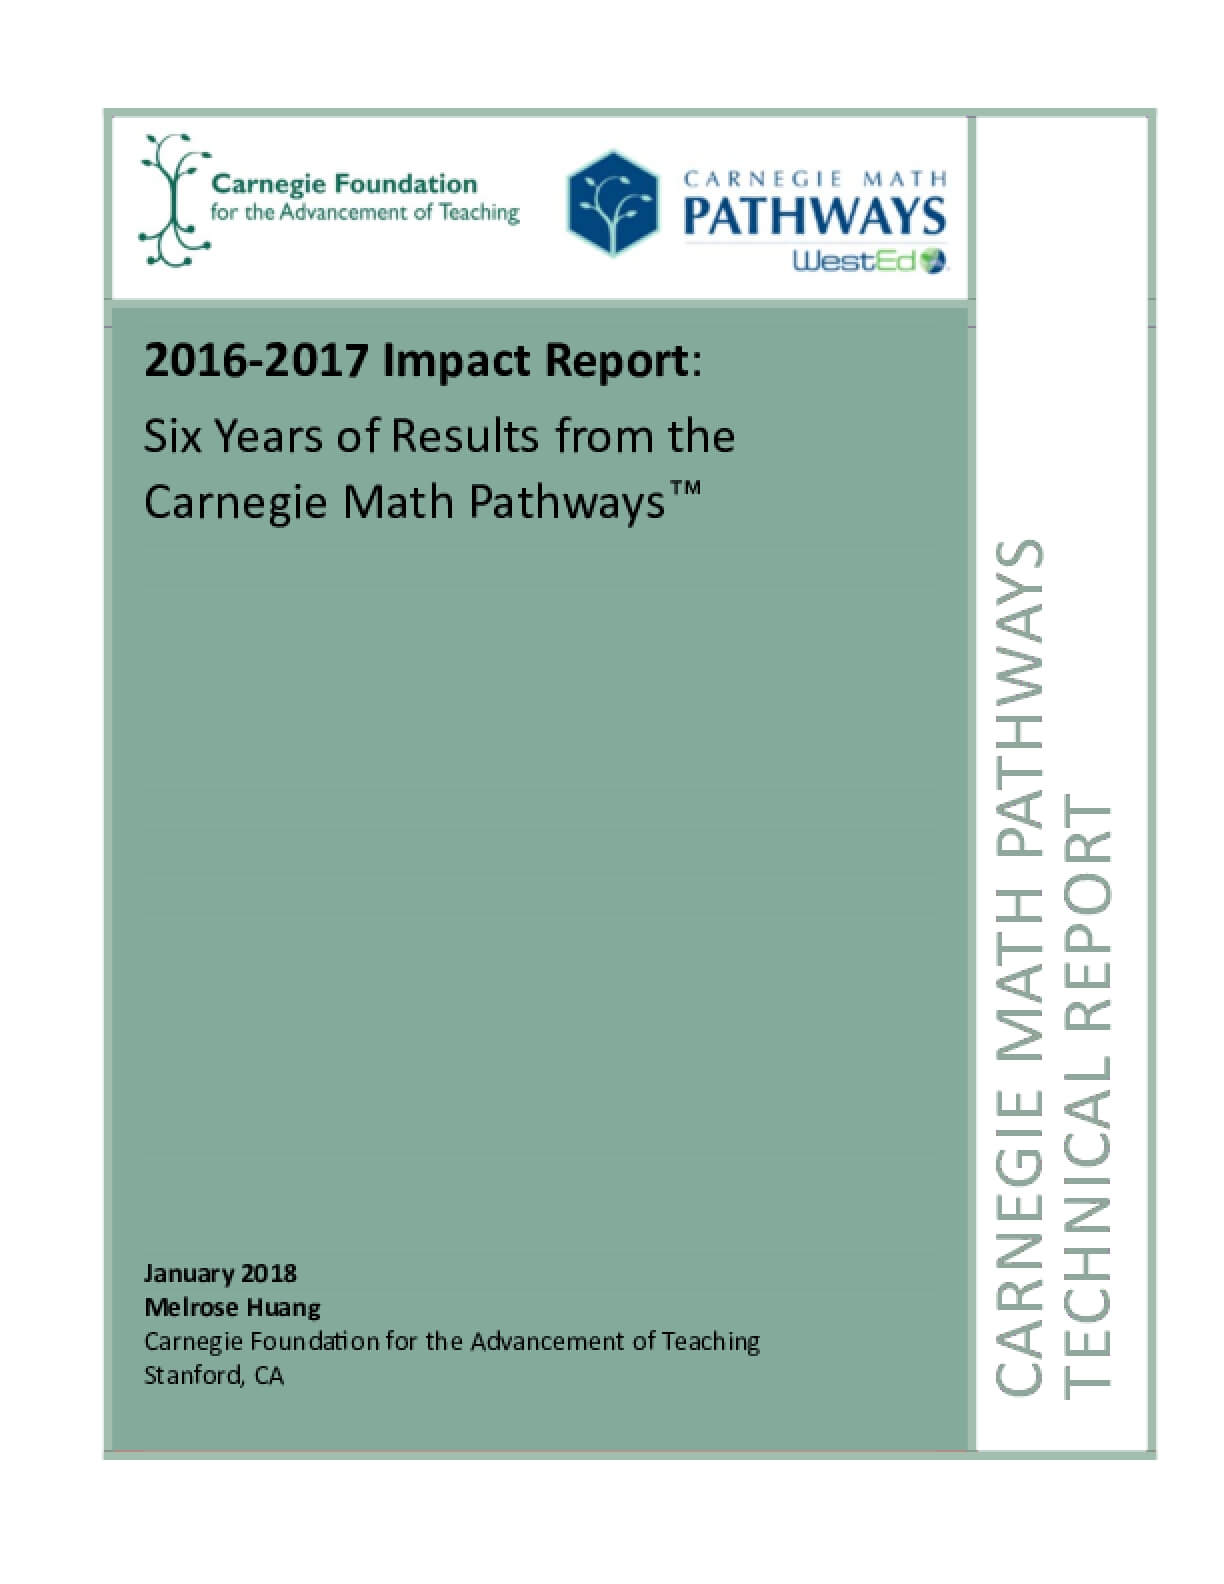 2016-2017 Impact Report: Six Years of Results from the Carnegie Math Pathways